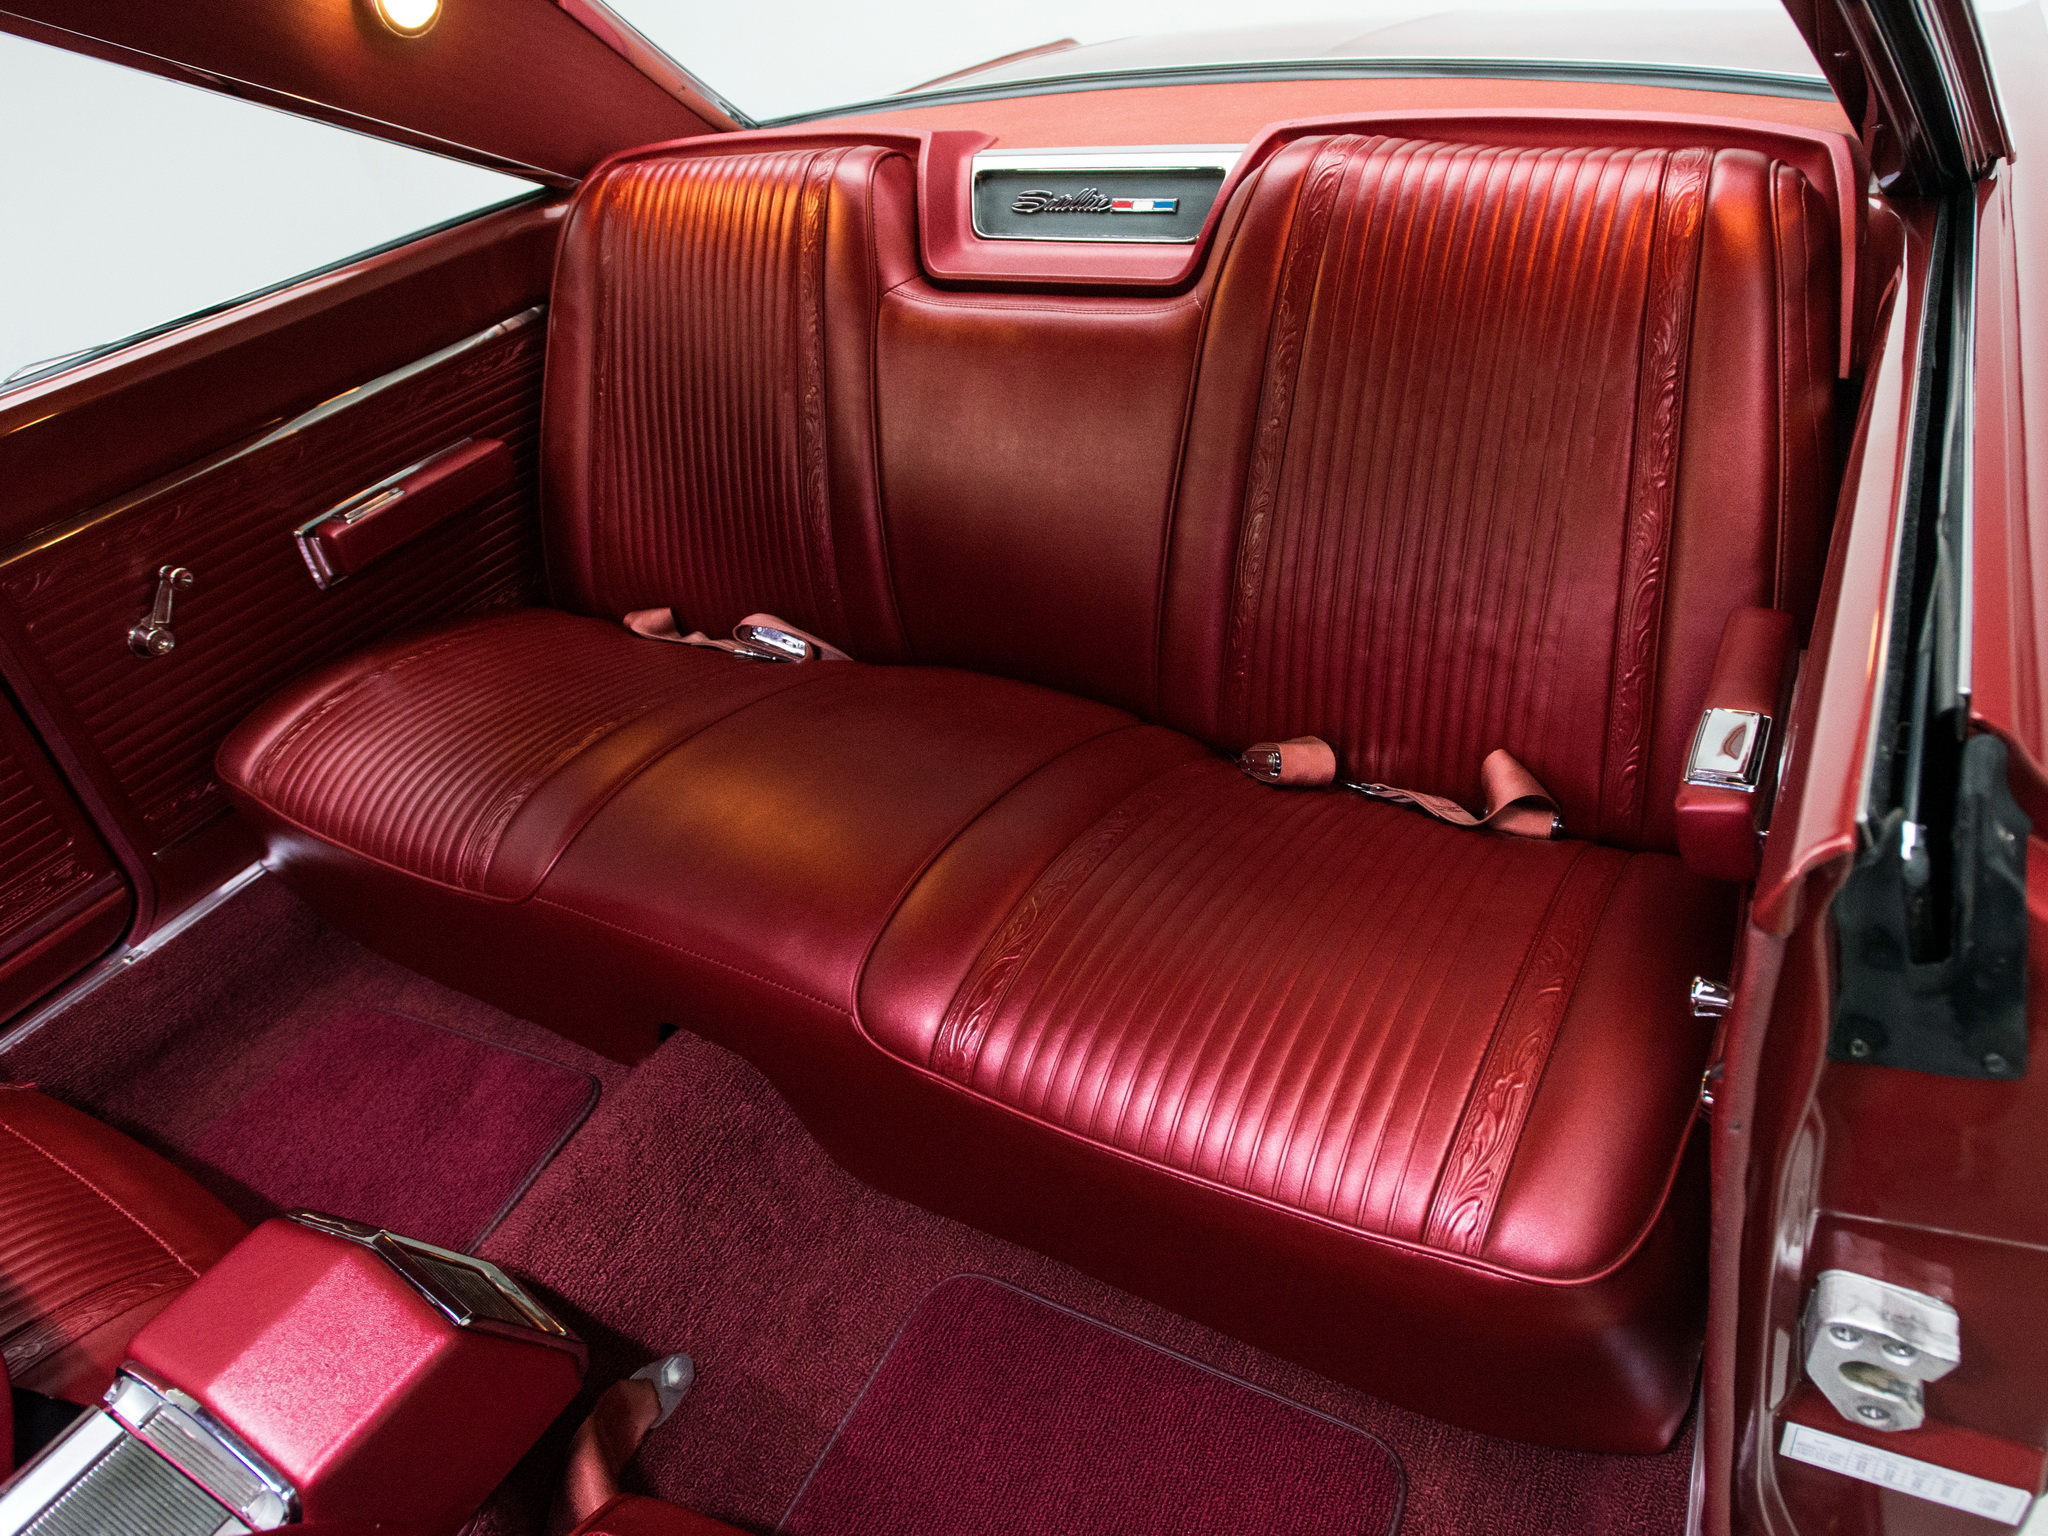 1966 Plymouth Belvedere Satellite 426 Hemi Hardtop Coupe Rp23 Muscle Classic Interior T